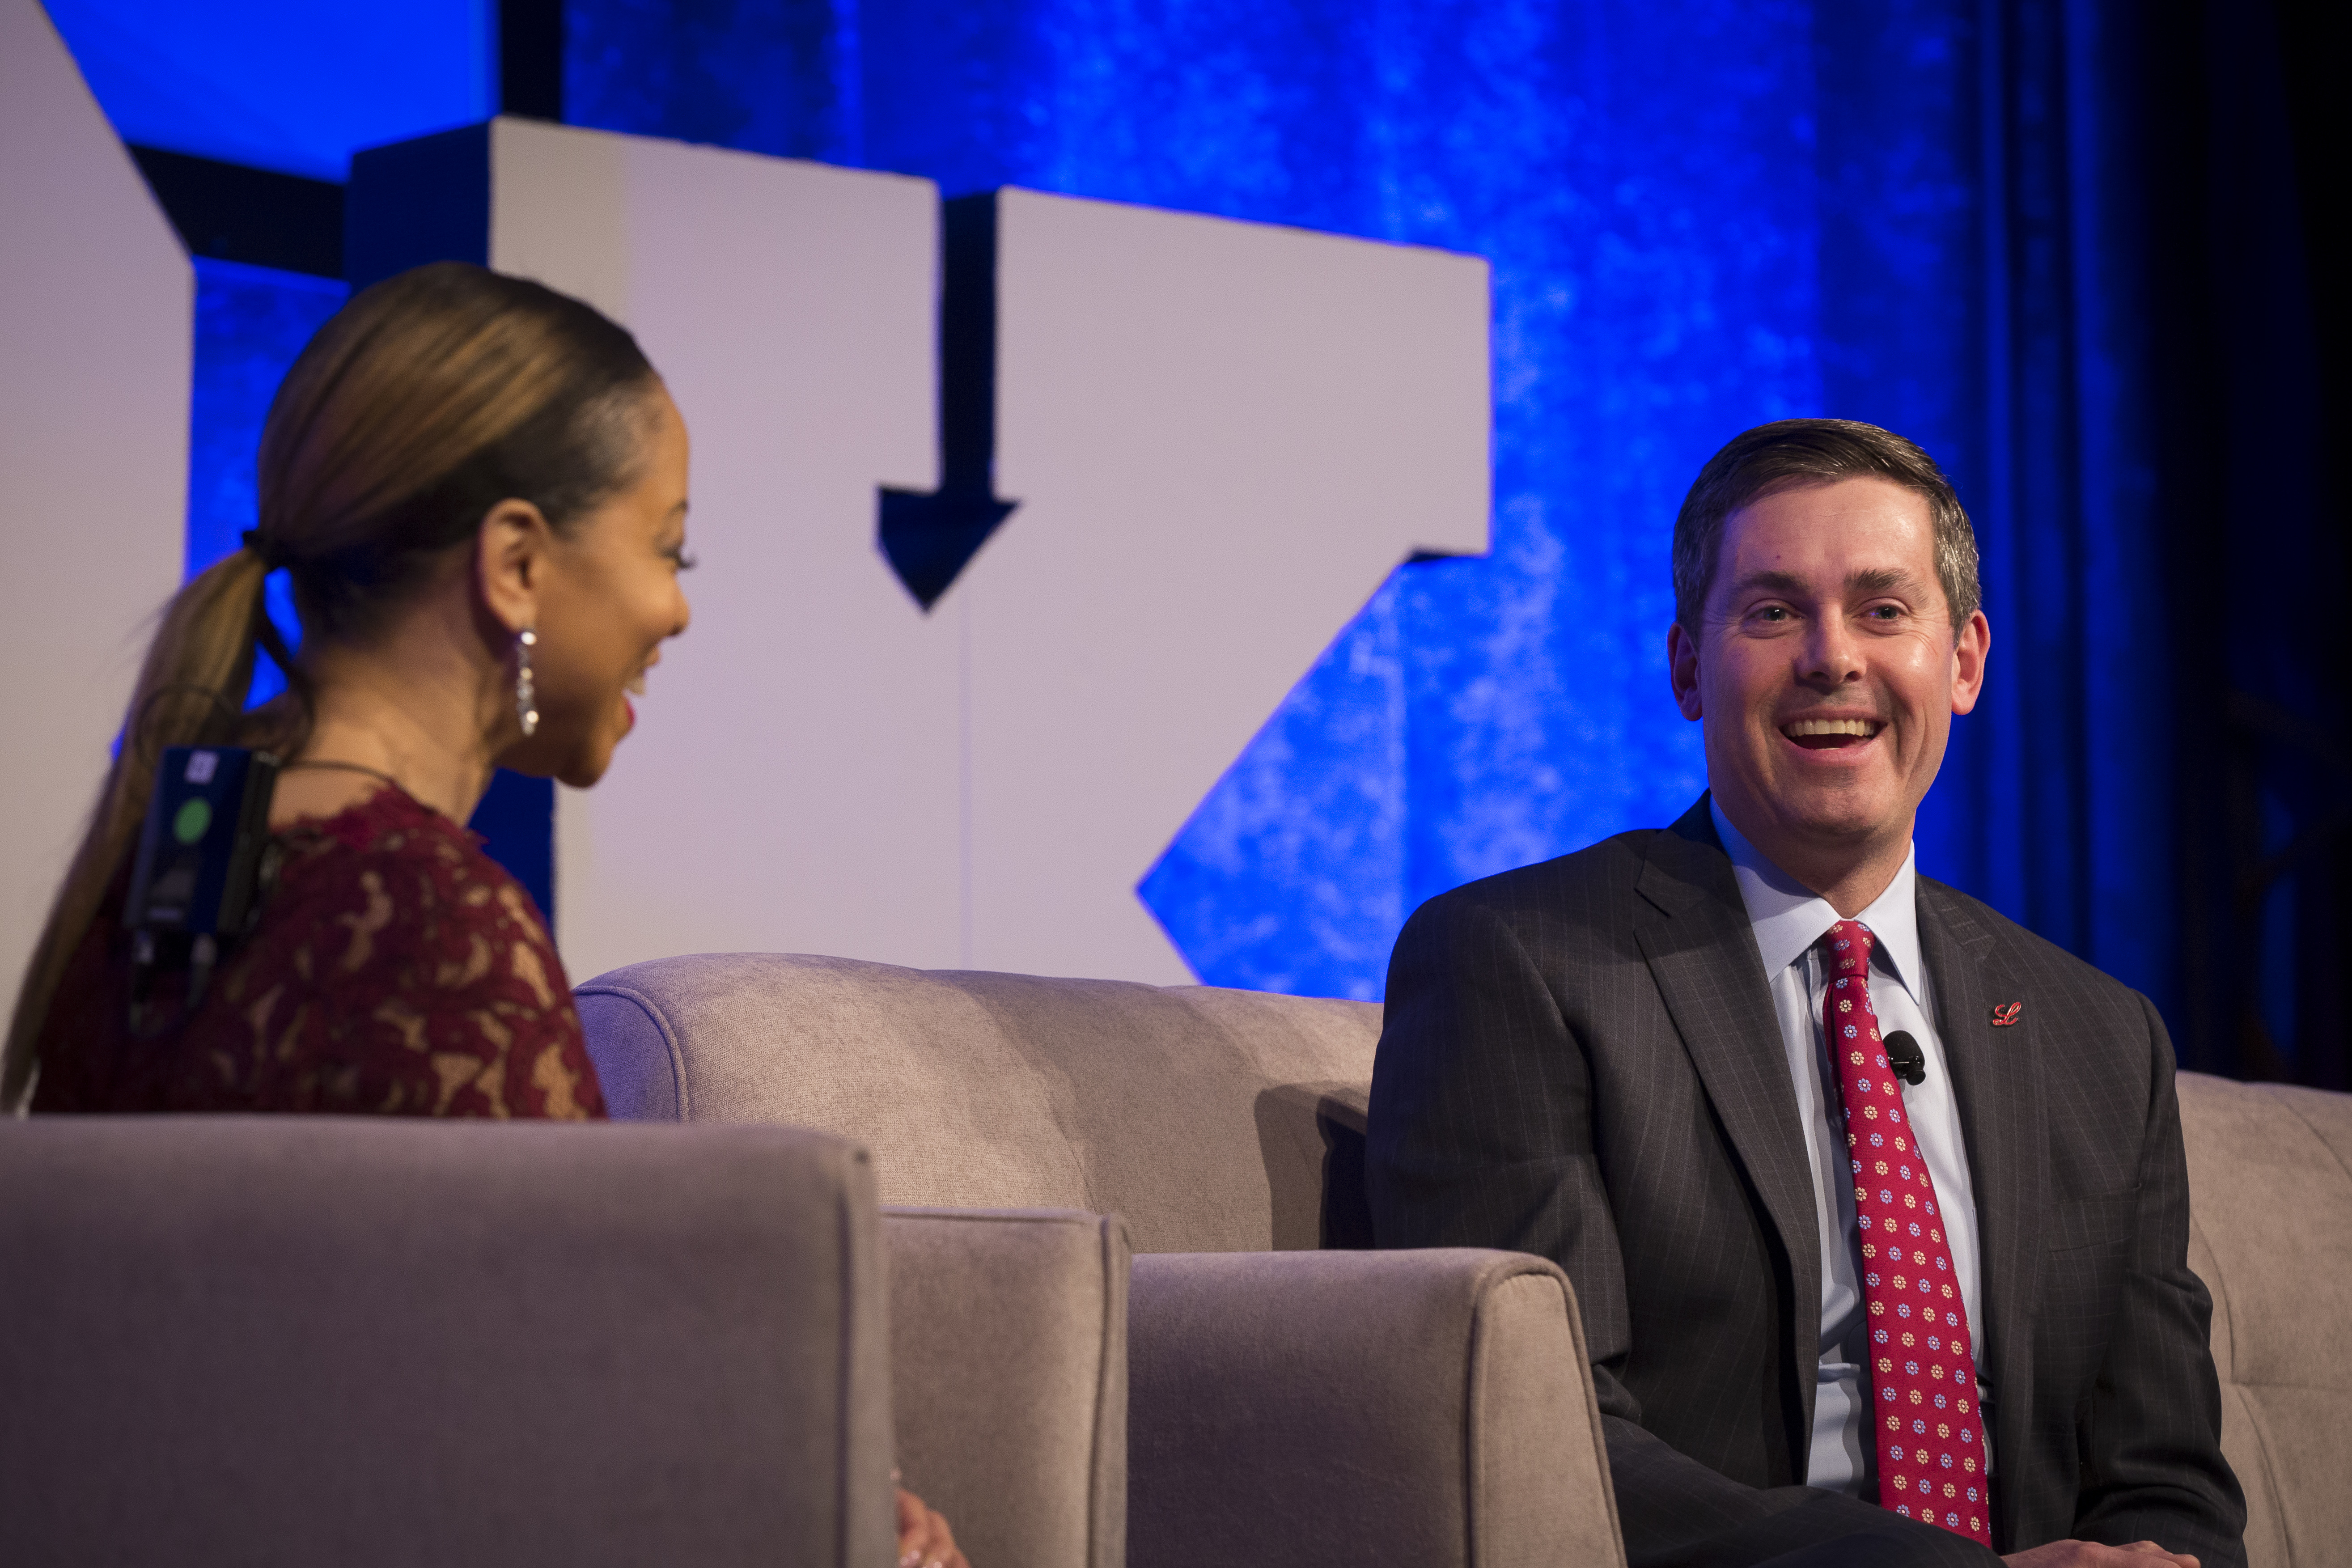 Eli Lilly and Company's Joy Fitzgerald, Chief Diversity Officer, and David A. Ricks, Chairman & CEO.